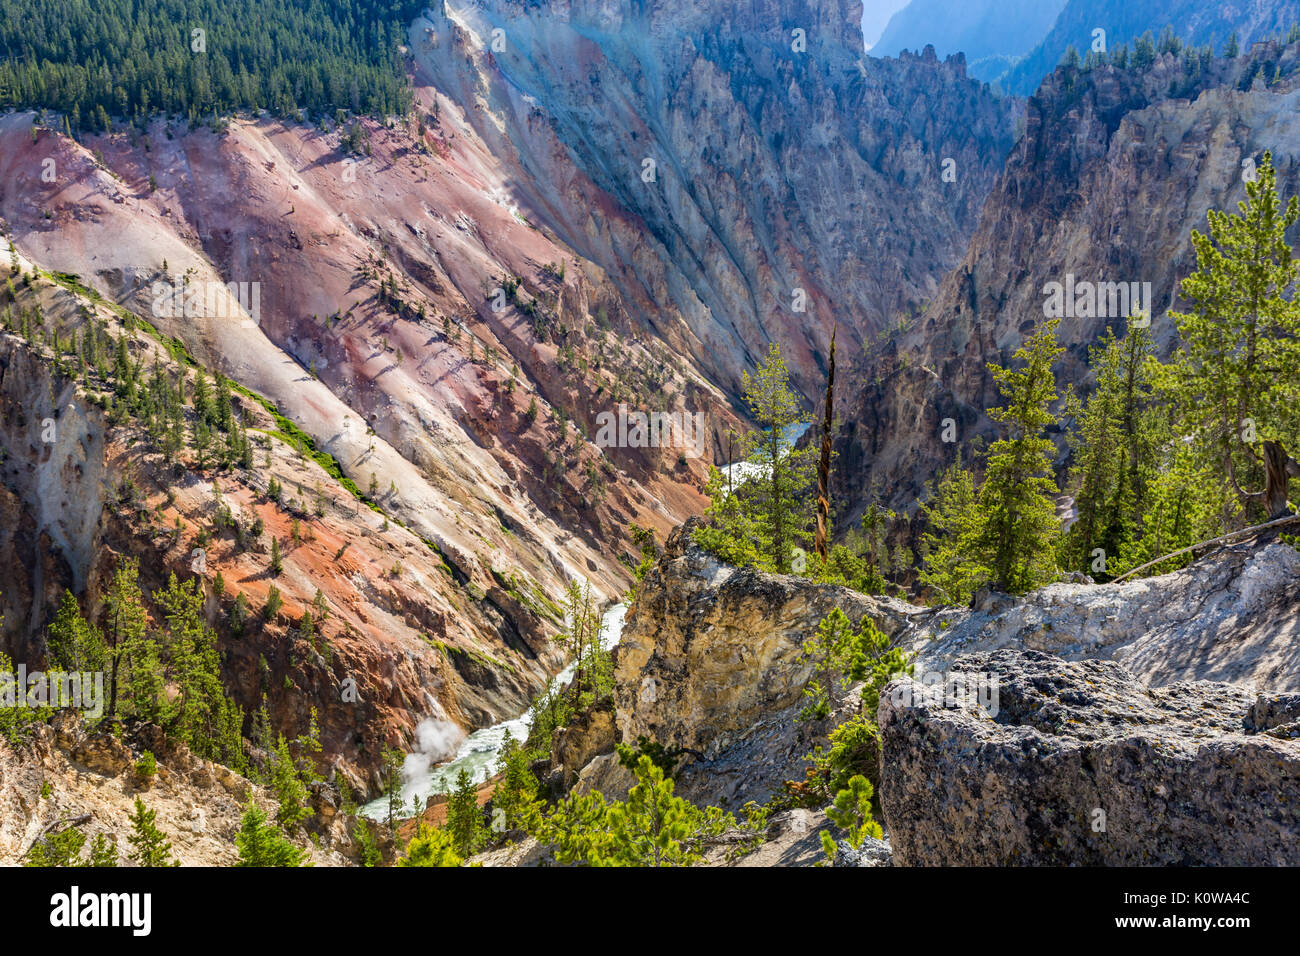 A view looking down the Grand Canyon of the Yellowstone from Artist Point in Yellowstone National Park, Wyoming - Stock Image